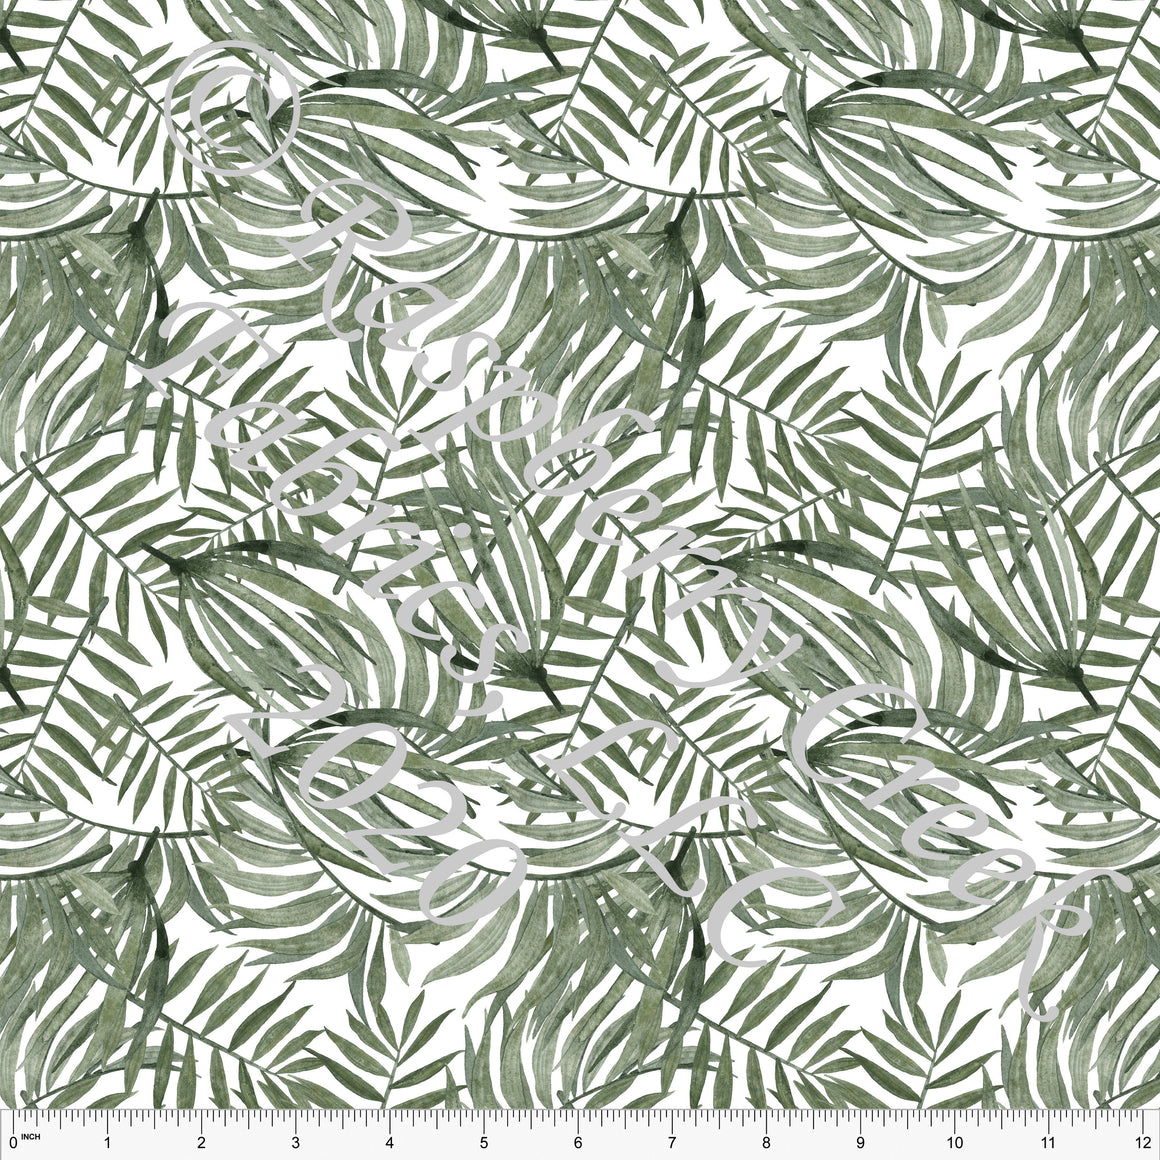 Tonal Sage Green Palm Leaf Rayon Challis, CLUB Fabrics, 1 Yard - Raspberry Creek Fabrics